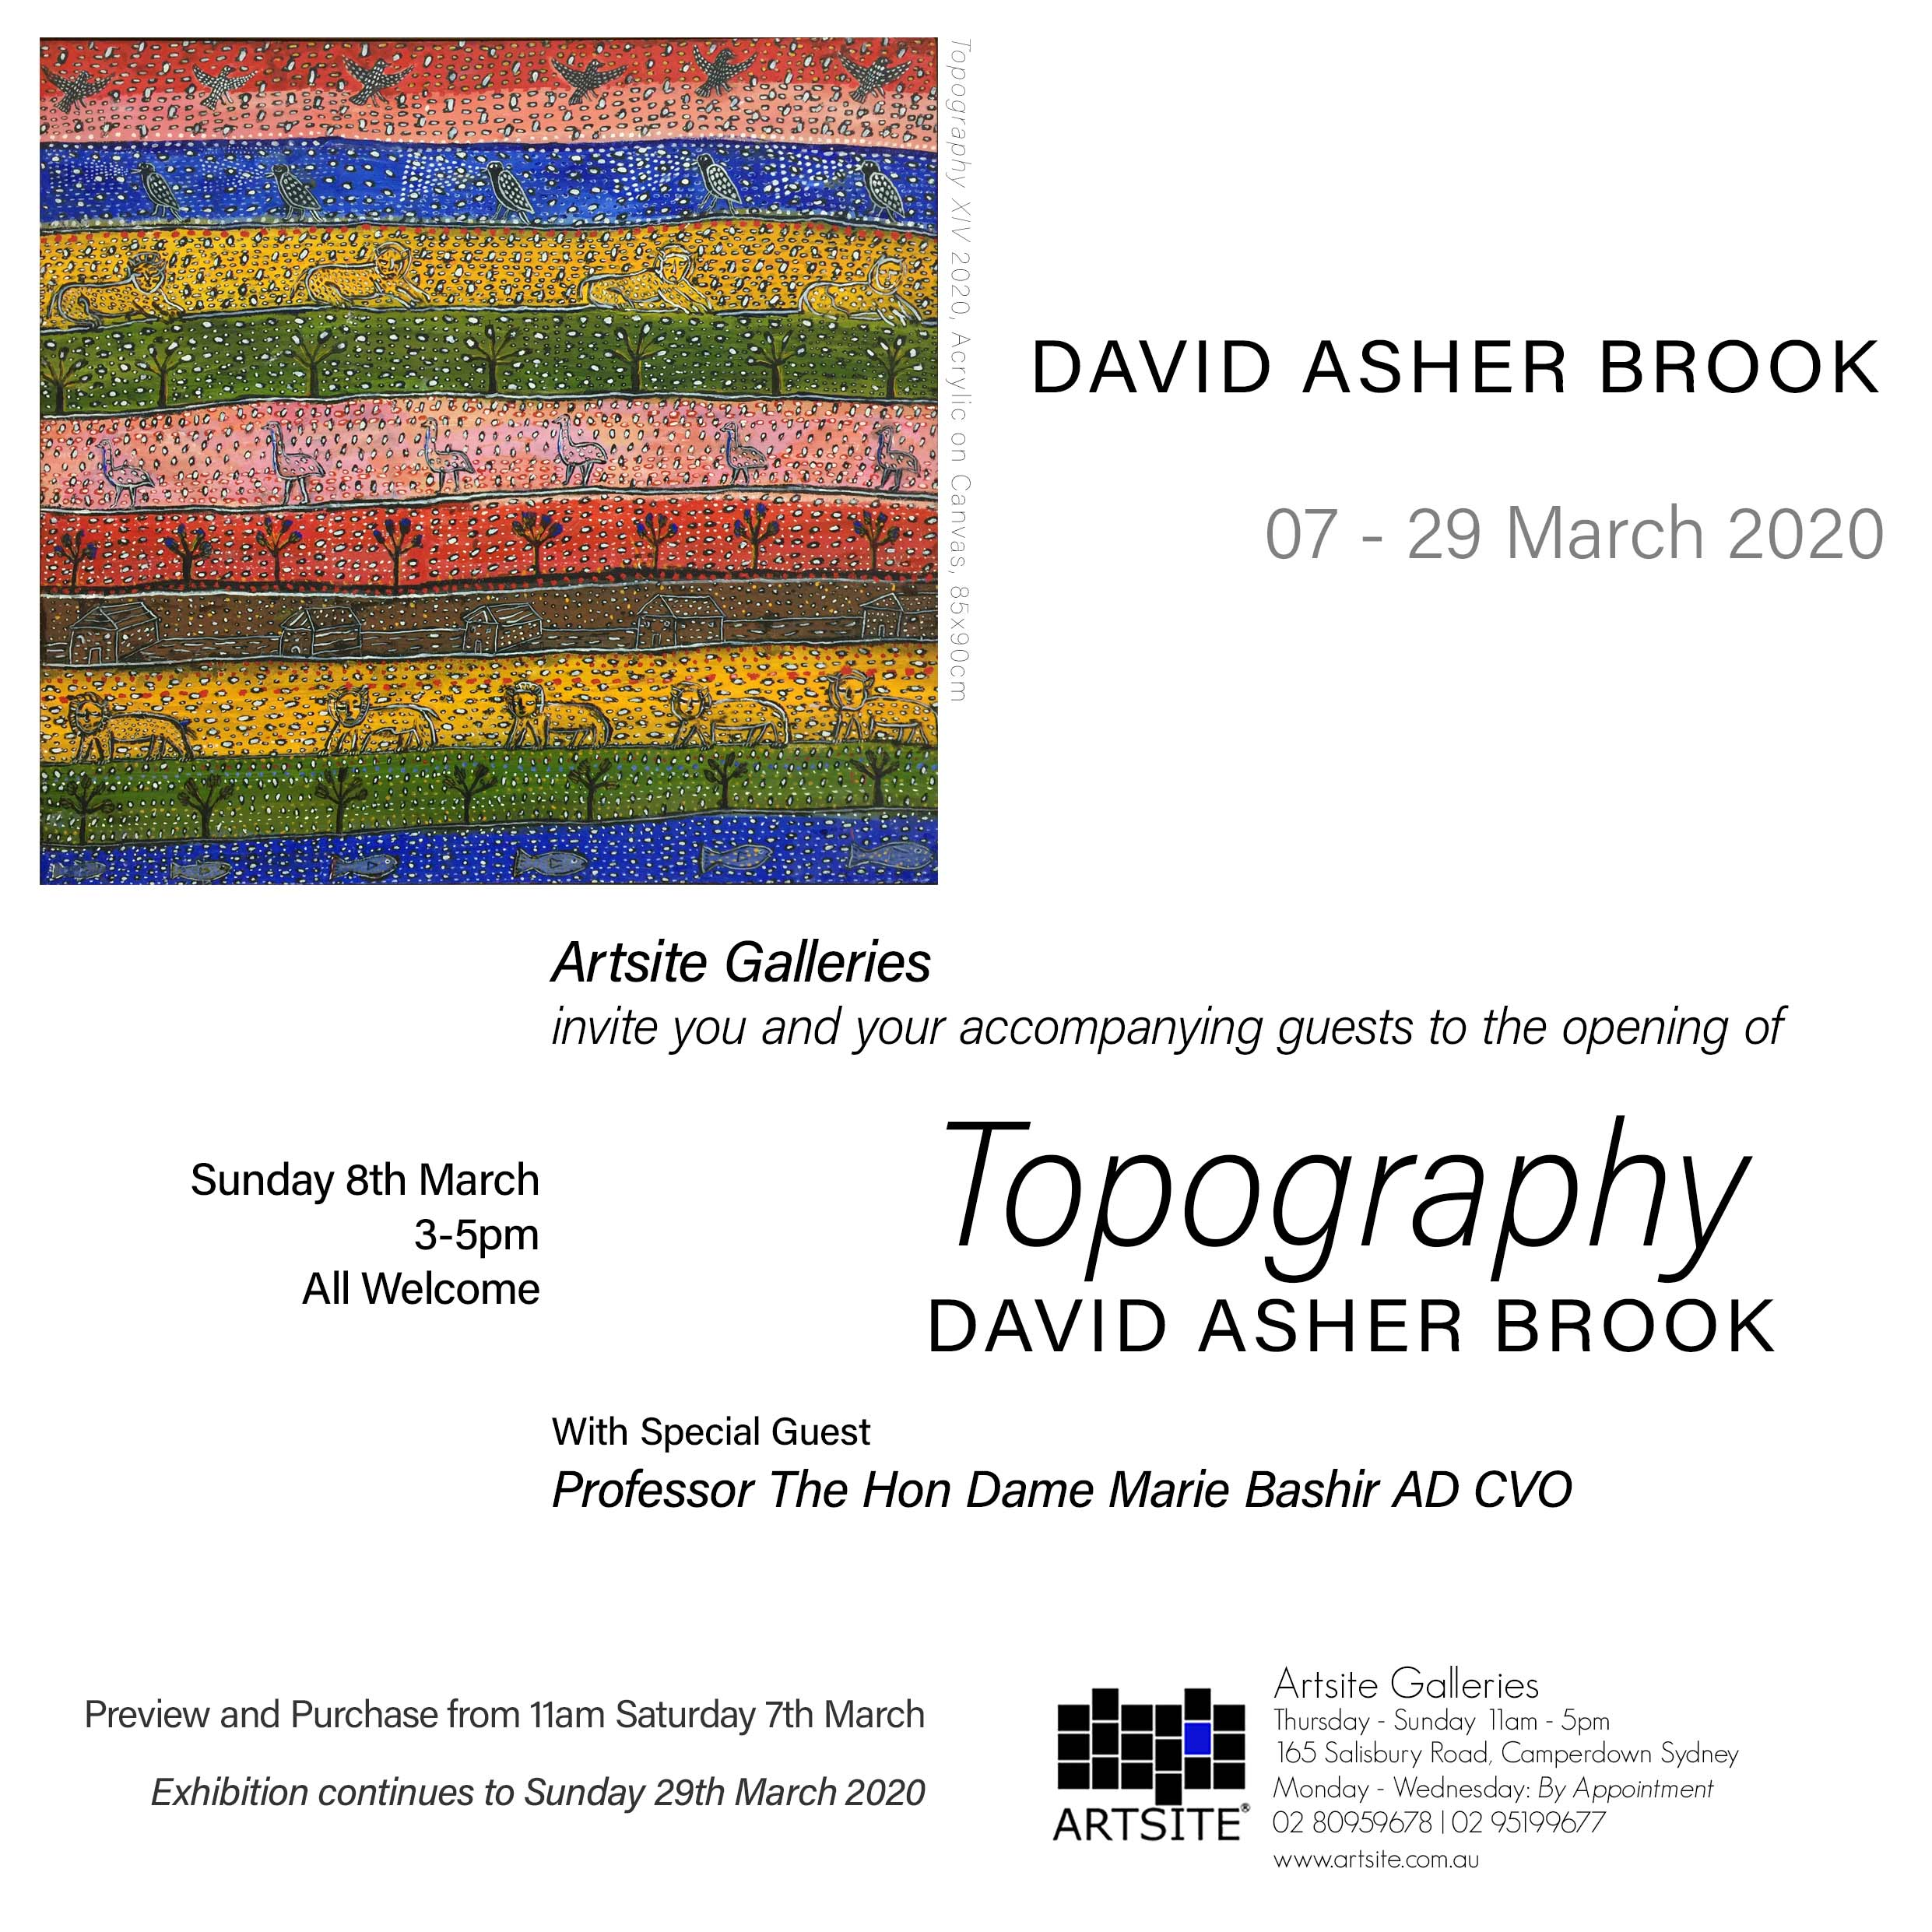 Artsite Gallery Exhibition | Topography: David Asher Brook. | Solo Exhibition | Opening event with Professor The Hon Dame Marie Bashir AD CVO | 3-5pm Sunday 08 March 2020 | All Welcome.